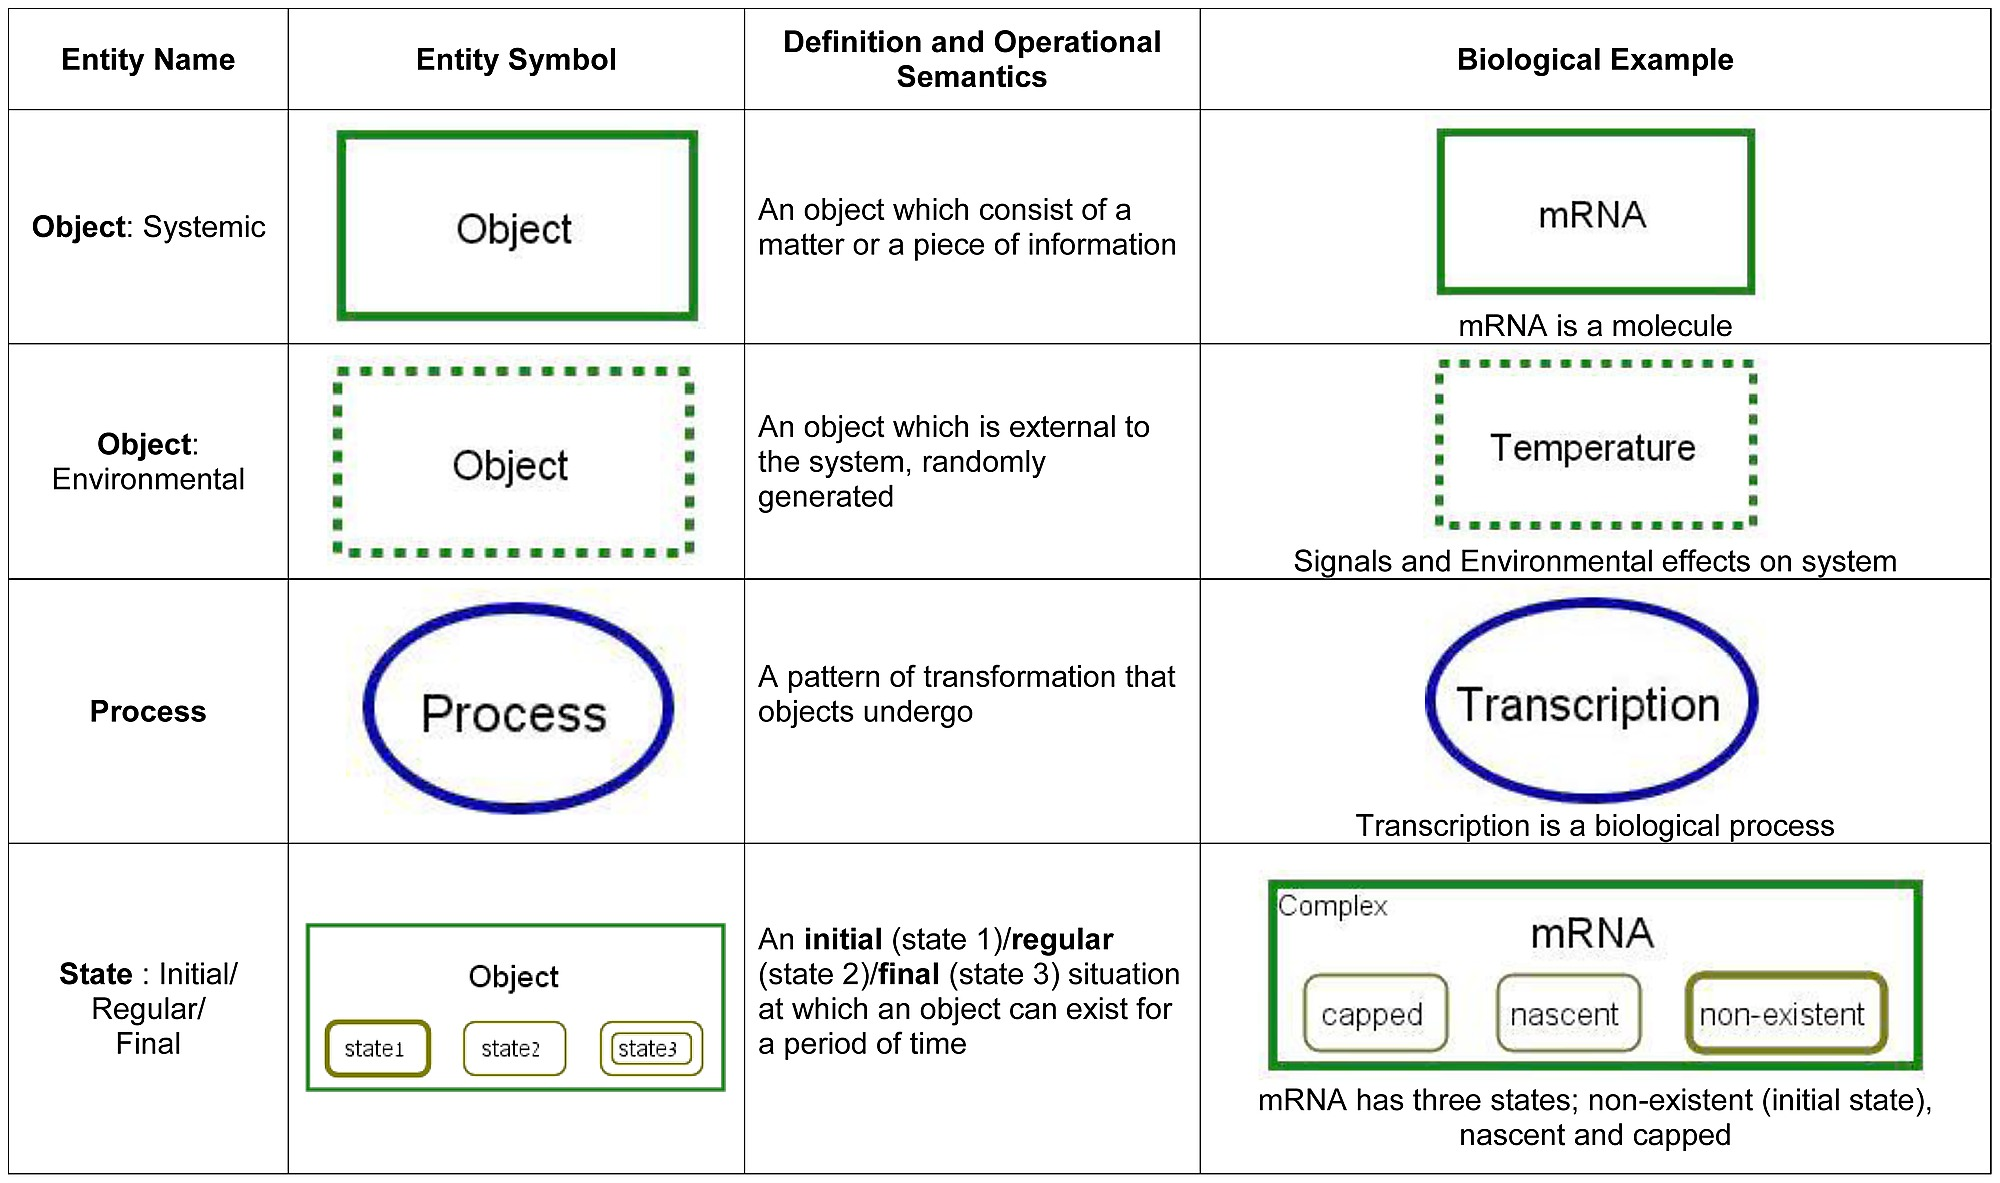 Opm Entities With Their Symbols Definitions And Operation Semantics